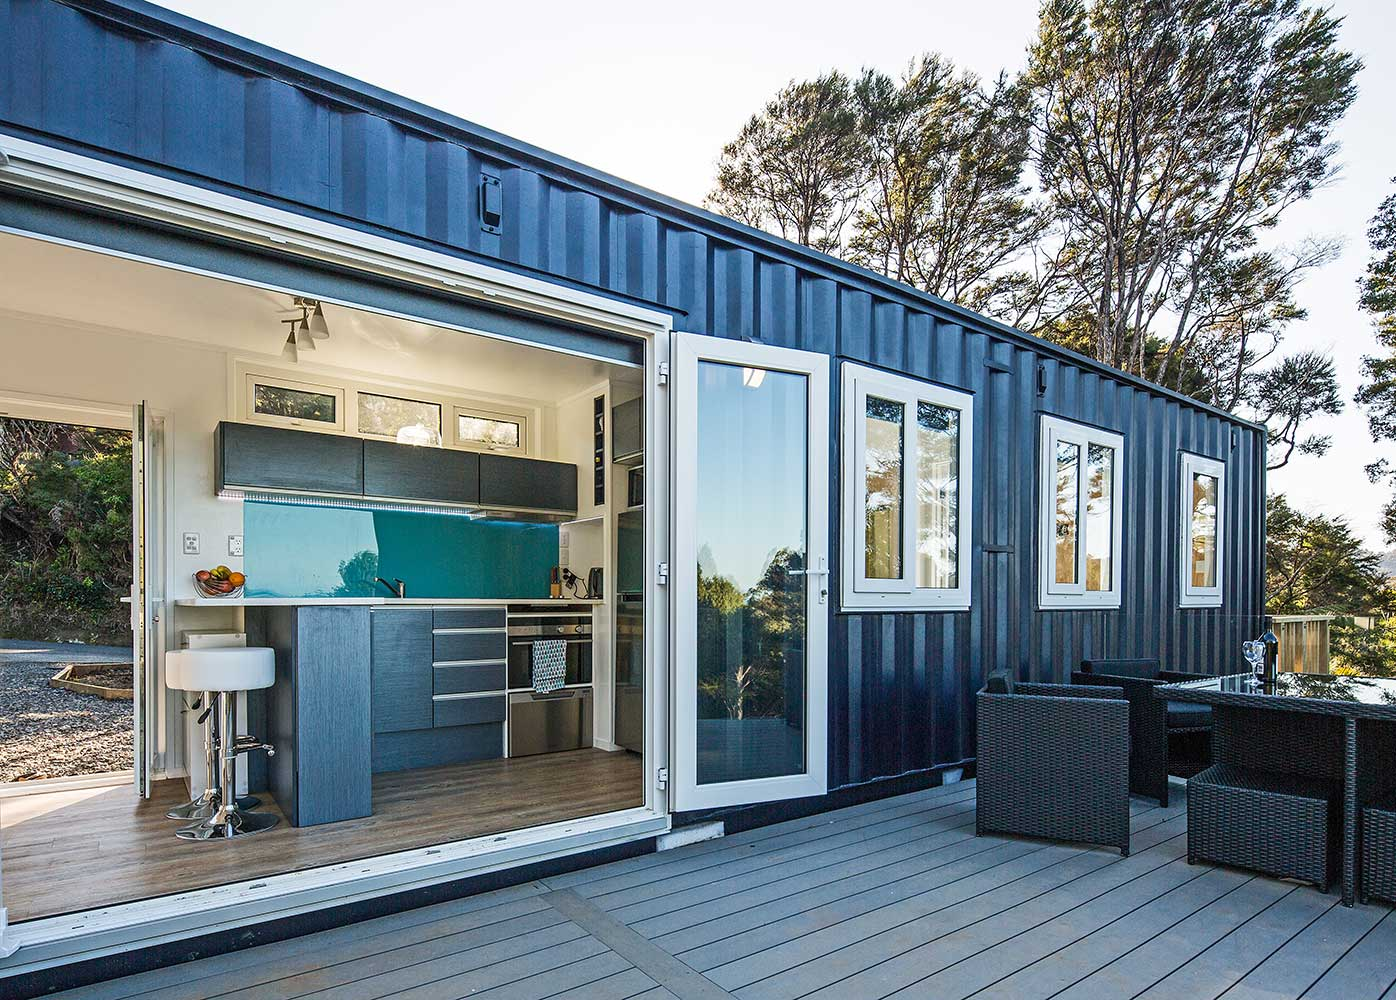 Shipping container homes building your own diy container house - Shipping container homes diy ...